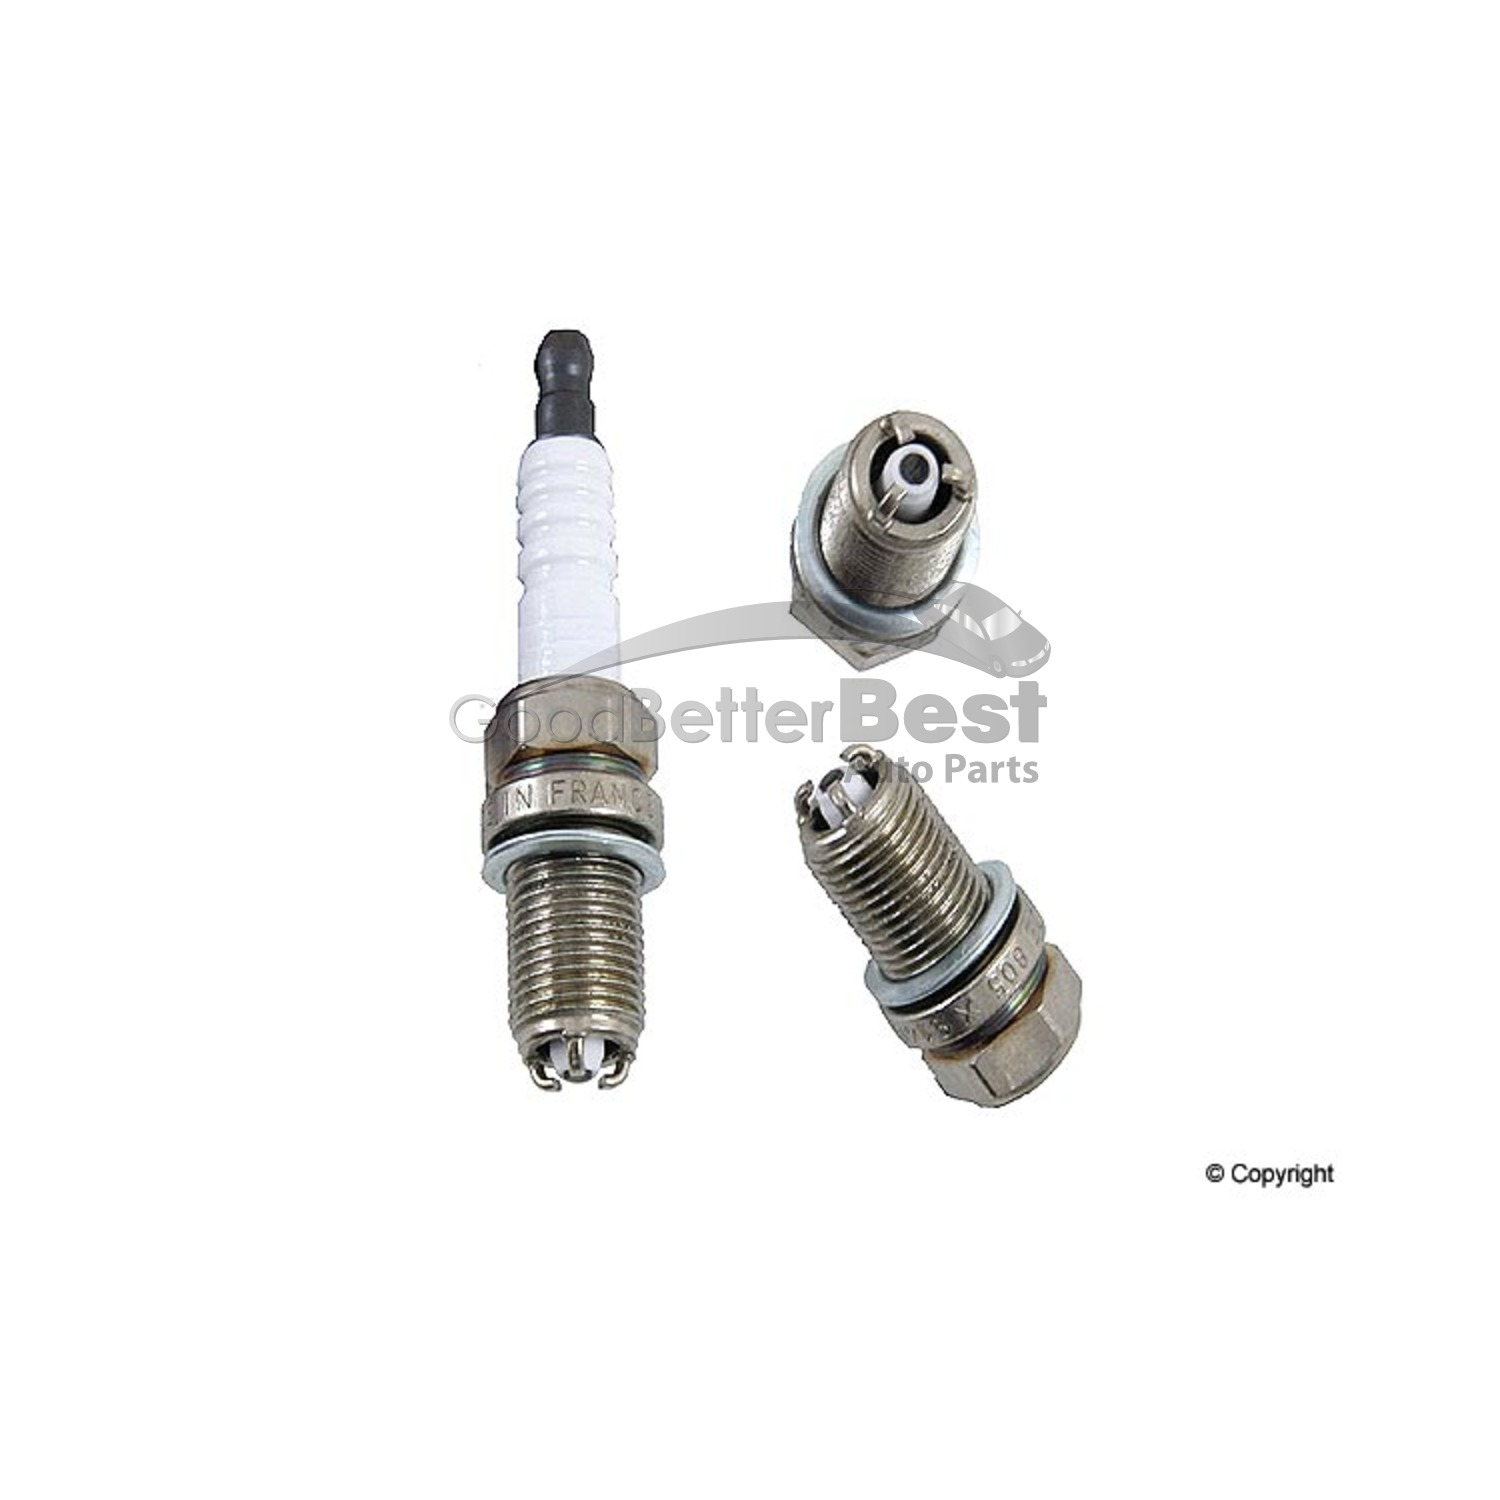 New Genuine Spark Plug Pack For Volvo 850 S60 S70